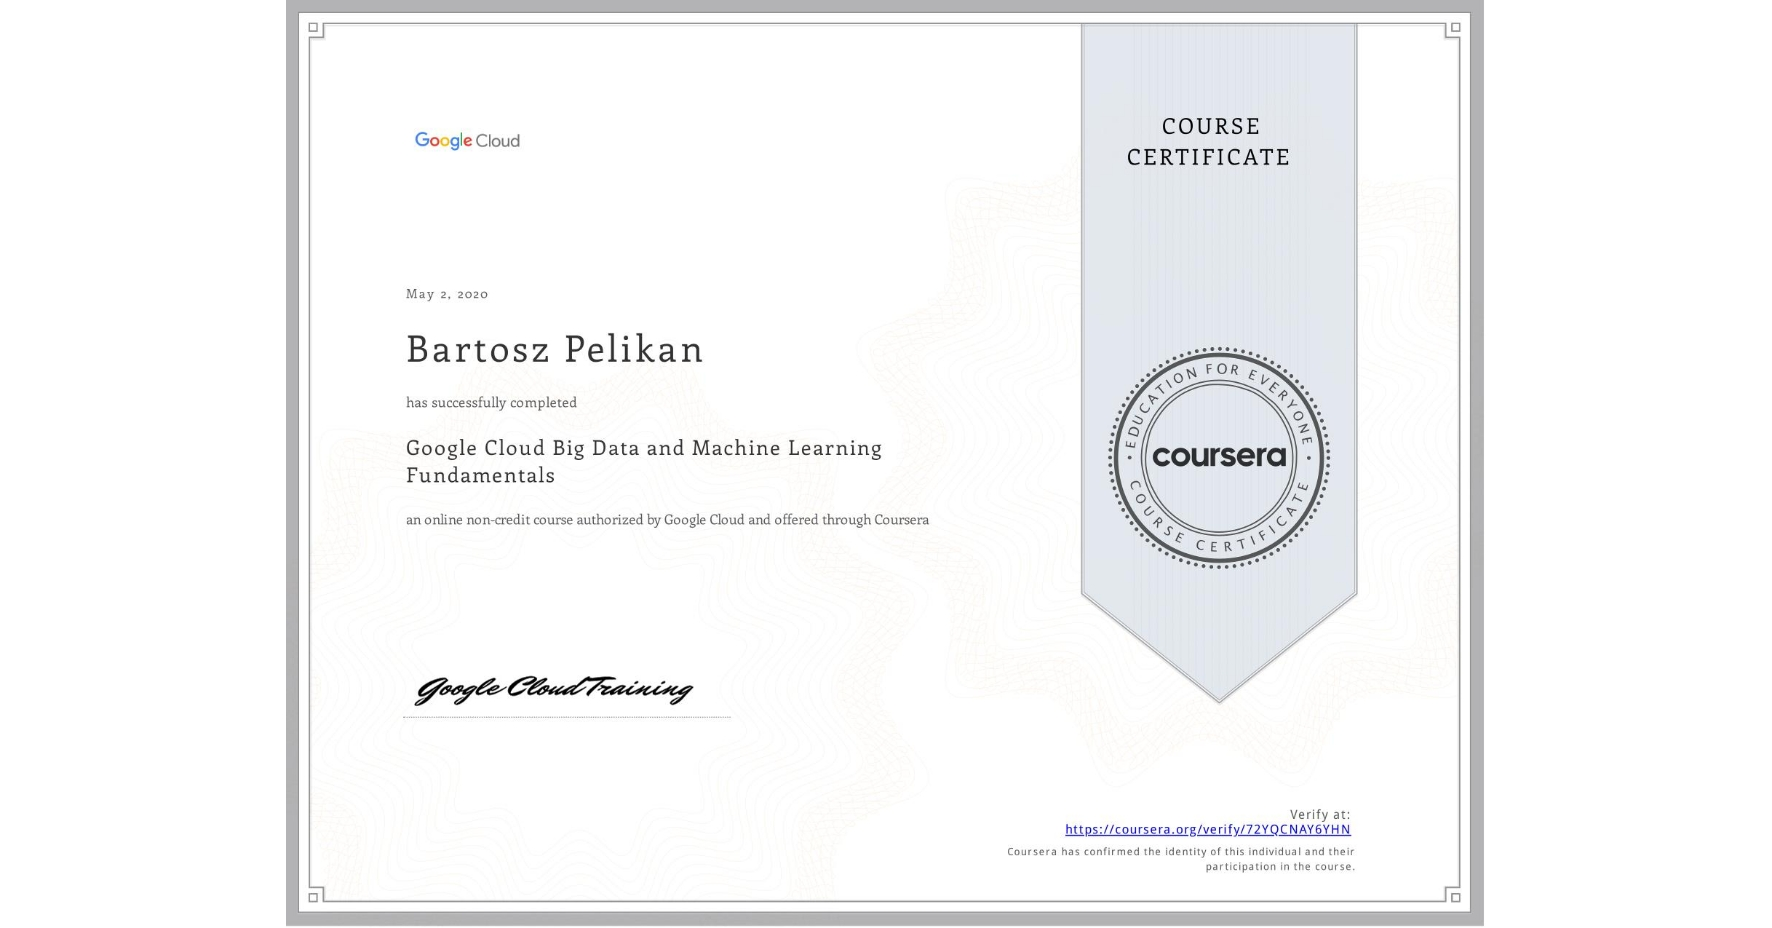 View certificate for Bartosz Pelikan, Google Cloud Platform Big Data and Machine Learning Fundamentals, an online non-credit course authorized by Google Cloud and offered through Coursera